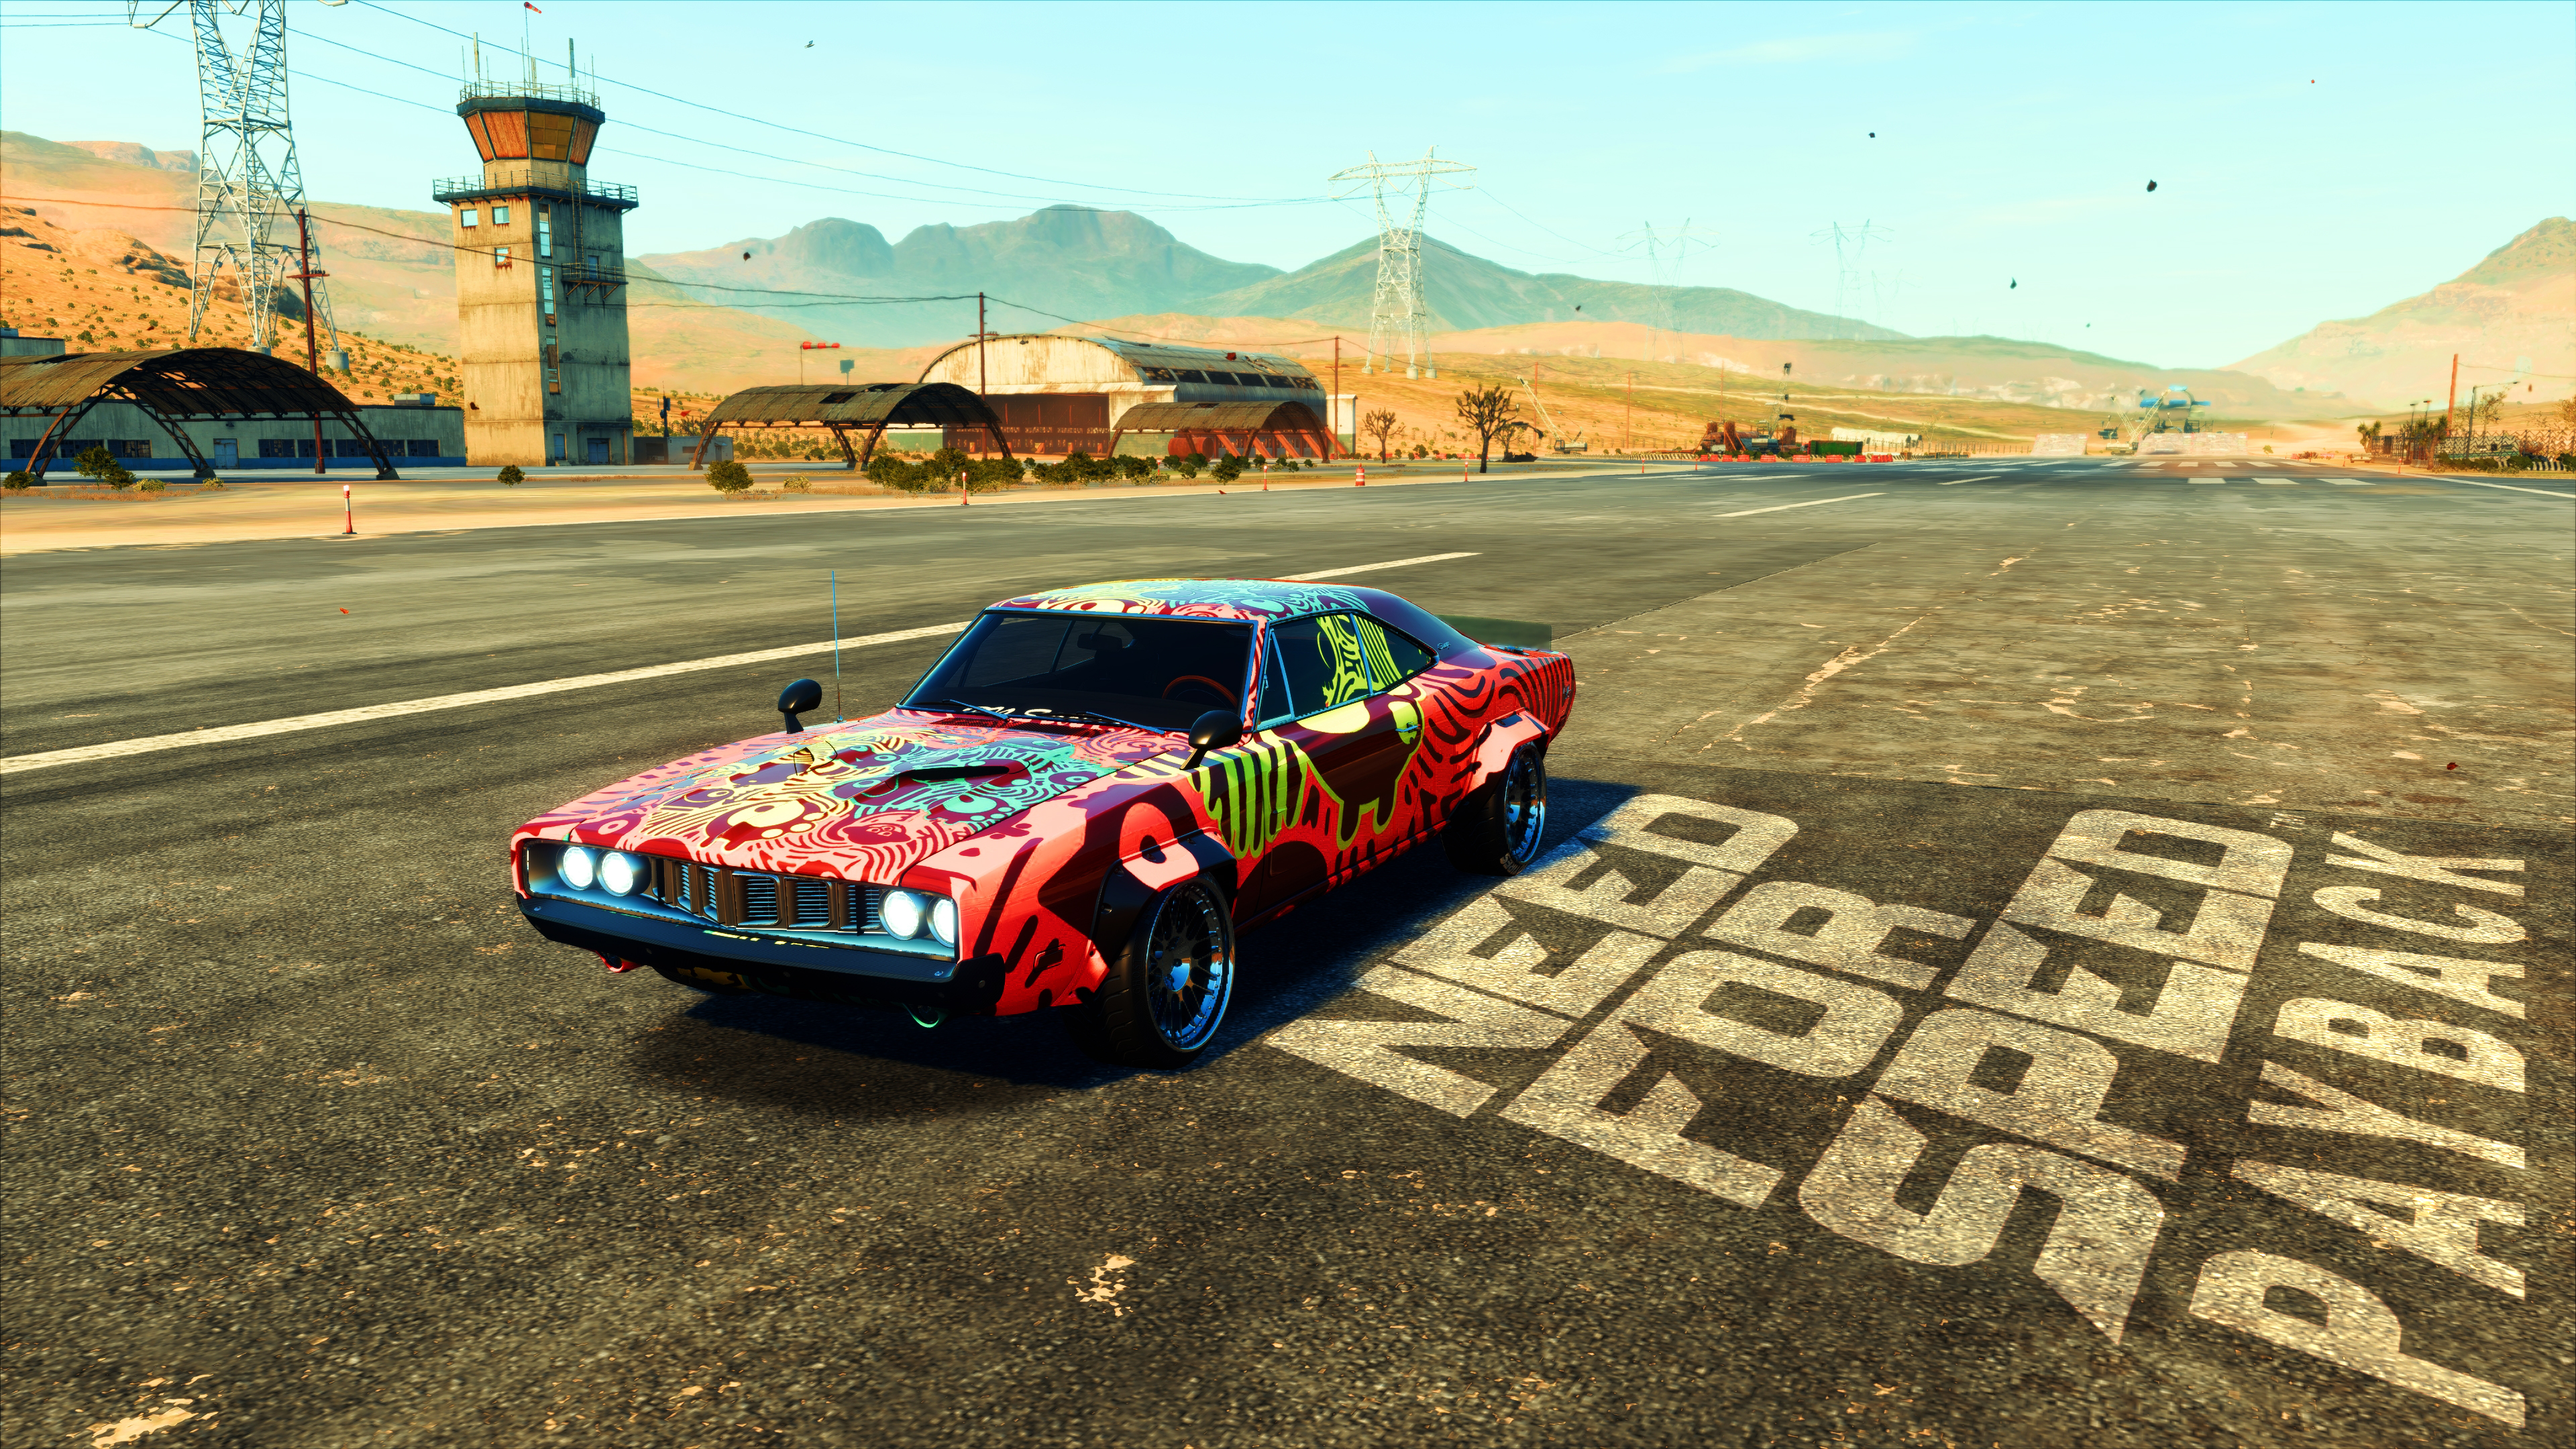 Need For Speed Payback Wallpaper: Need For Speed Payback 4k 2018, HD Games, 4k Wallpapers